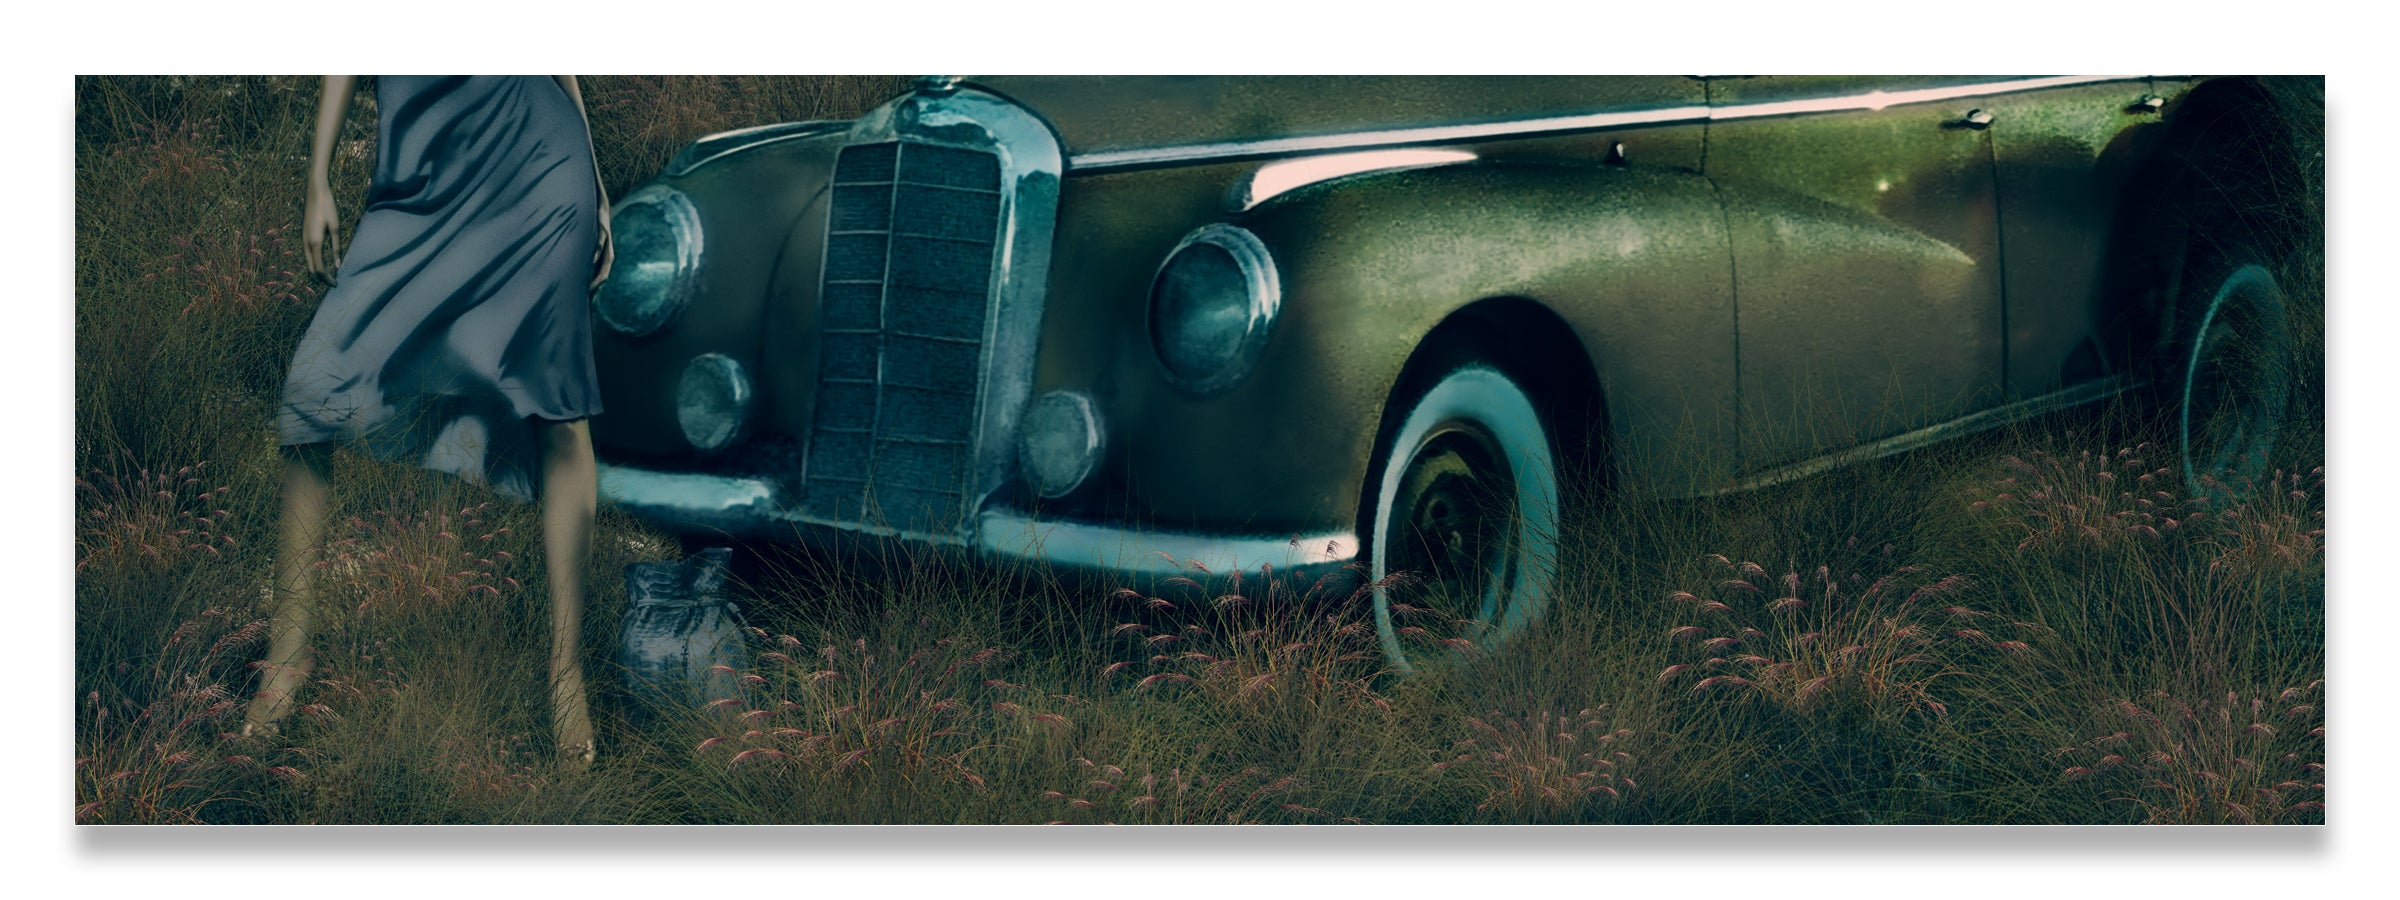 Woman Standing in Front of a Classic Car at Dusk-Muted Color Tones-Fine Art Print